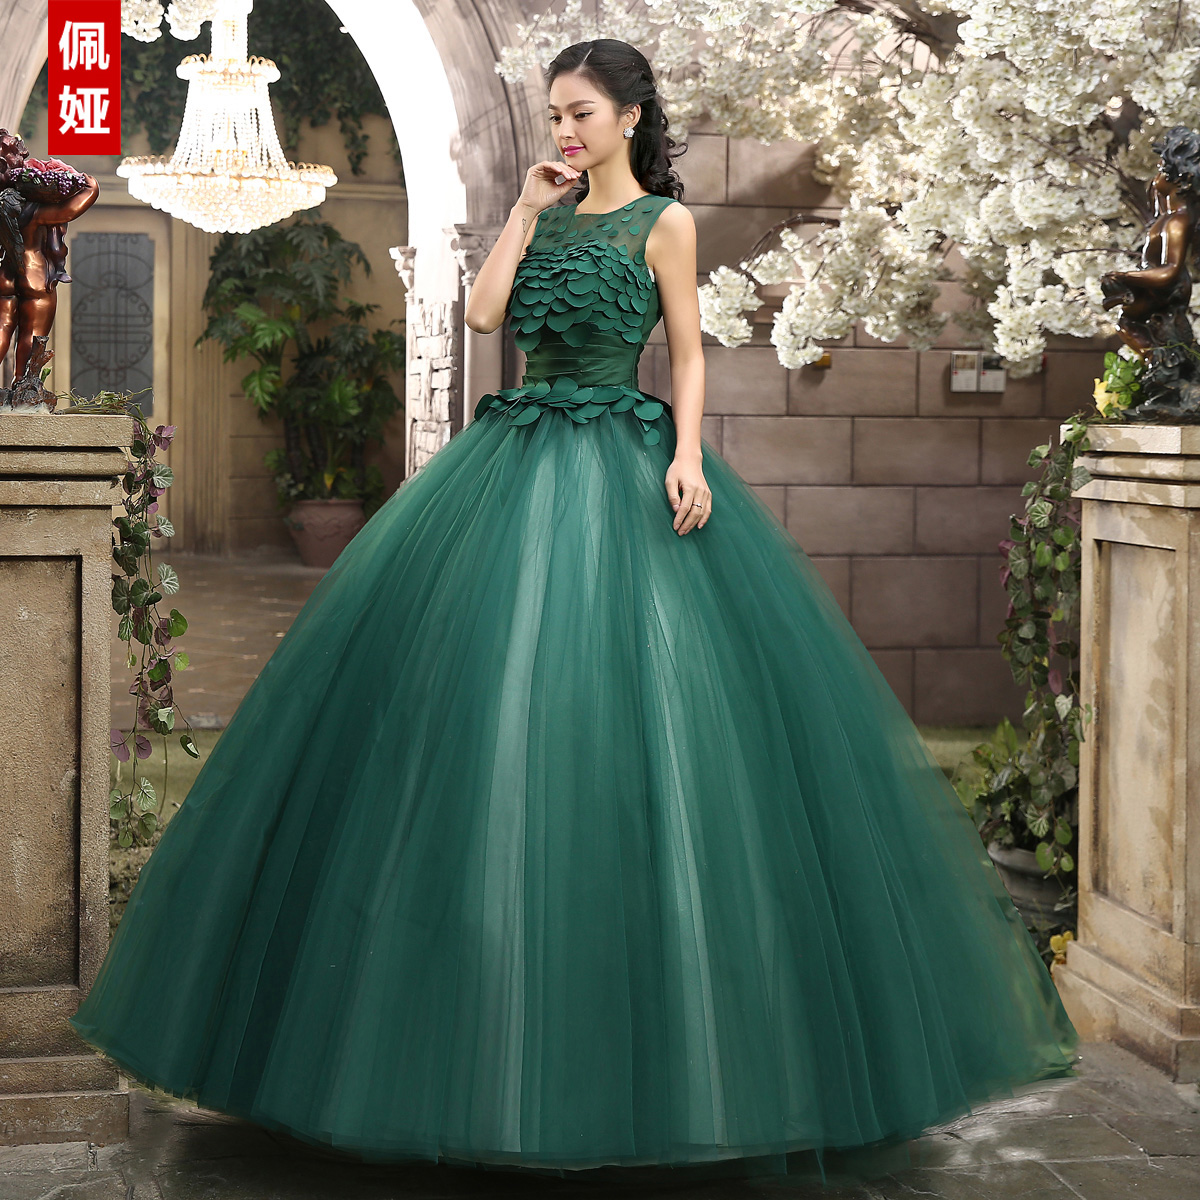 Word shoulder retro petal dress costumes tutu dress evening dress long paragraph evening dress wedding dress new 2015 stage